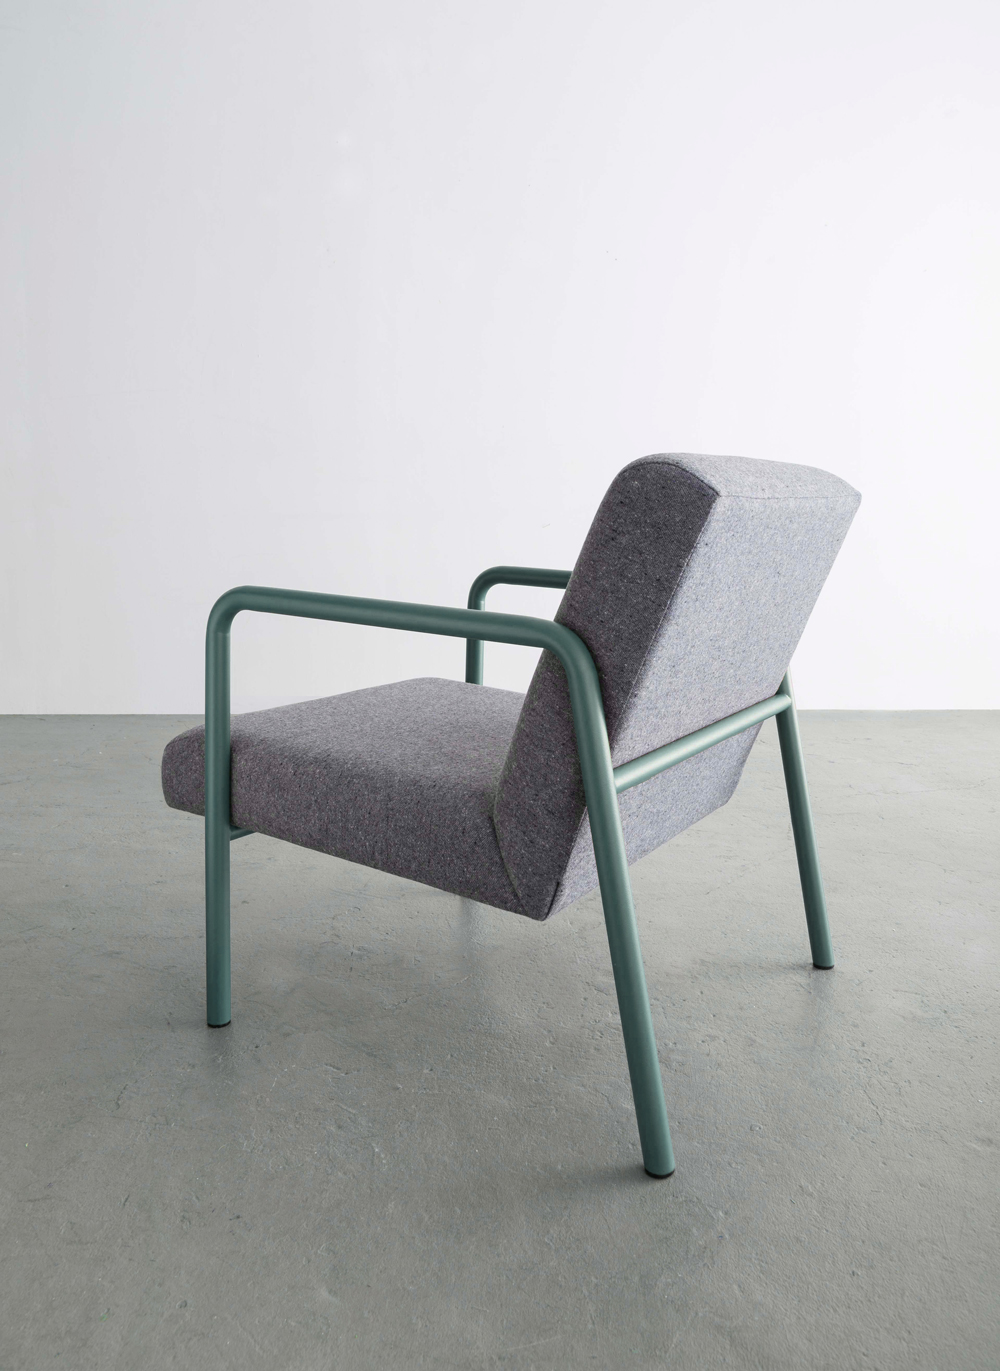 Berm Lounge Chair by David Gaynor Design